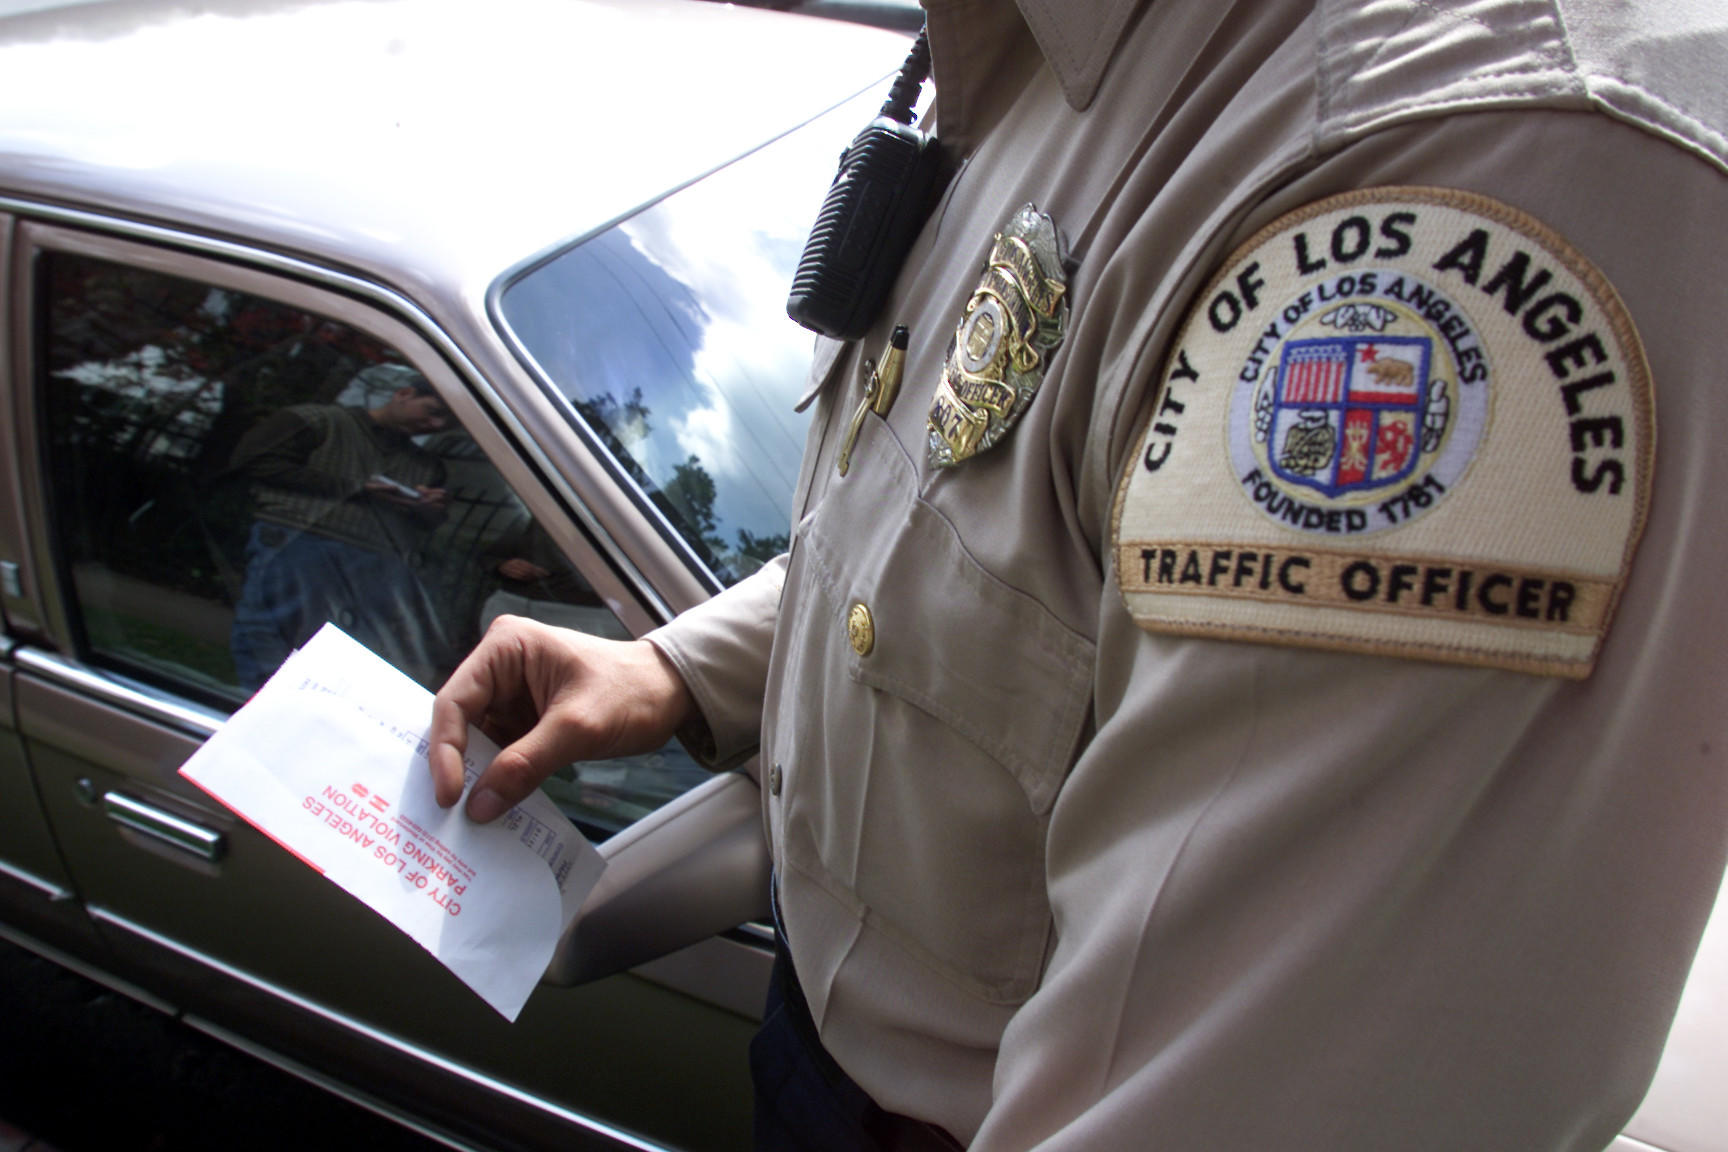 Los Angeles Traffic Officer Manny Garcia writes a parking citation for a car parked in a red zone in the Van Nuys area.